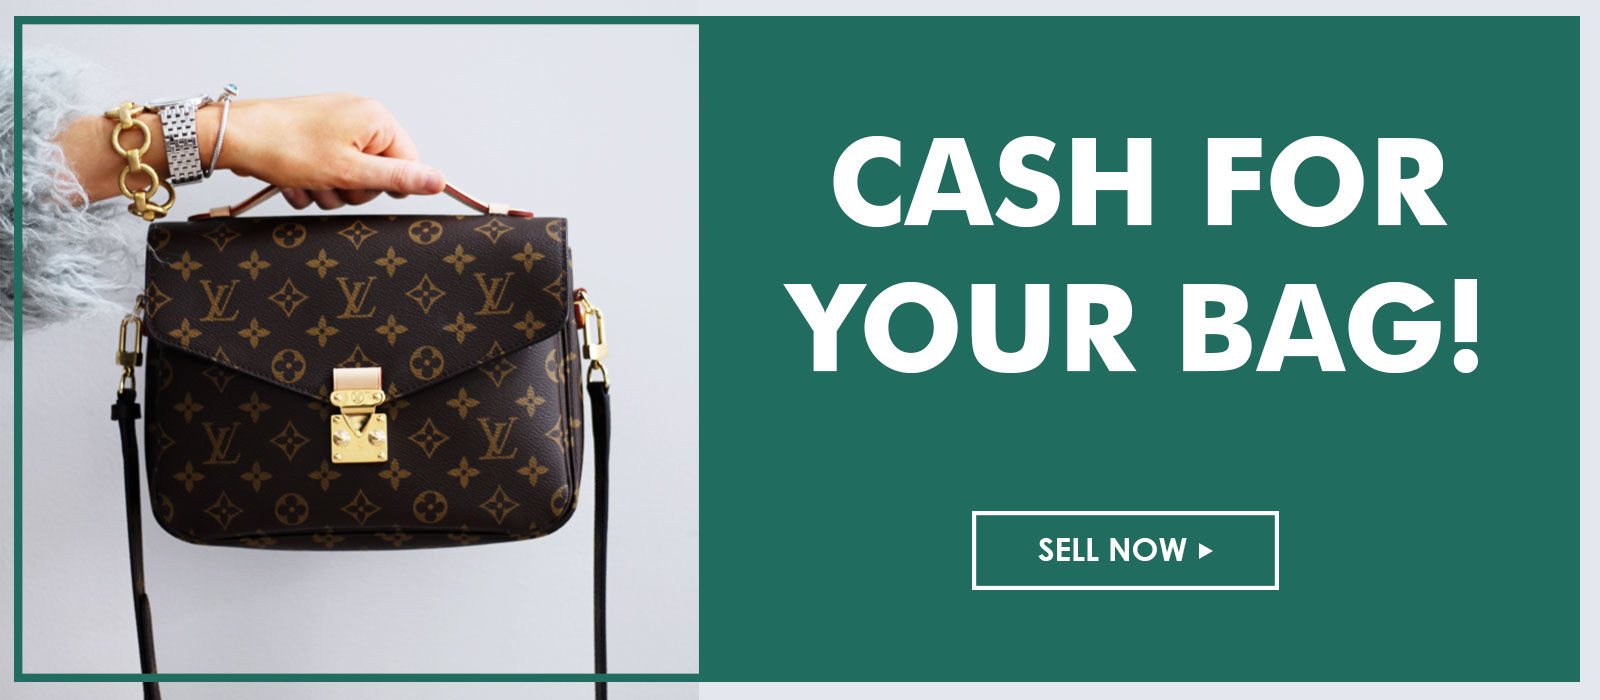 Sell Your Used Luxury Designer Handbags Online | Sell Your Bags